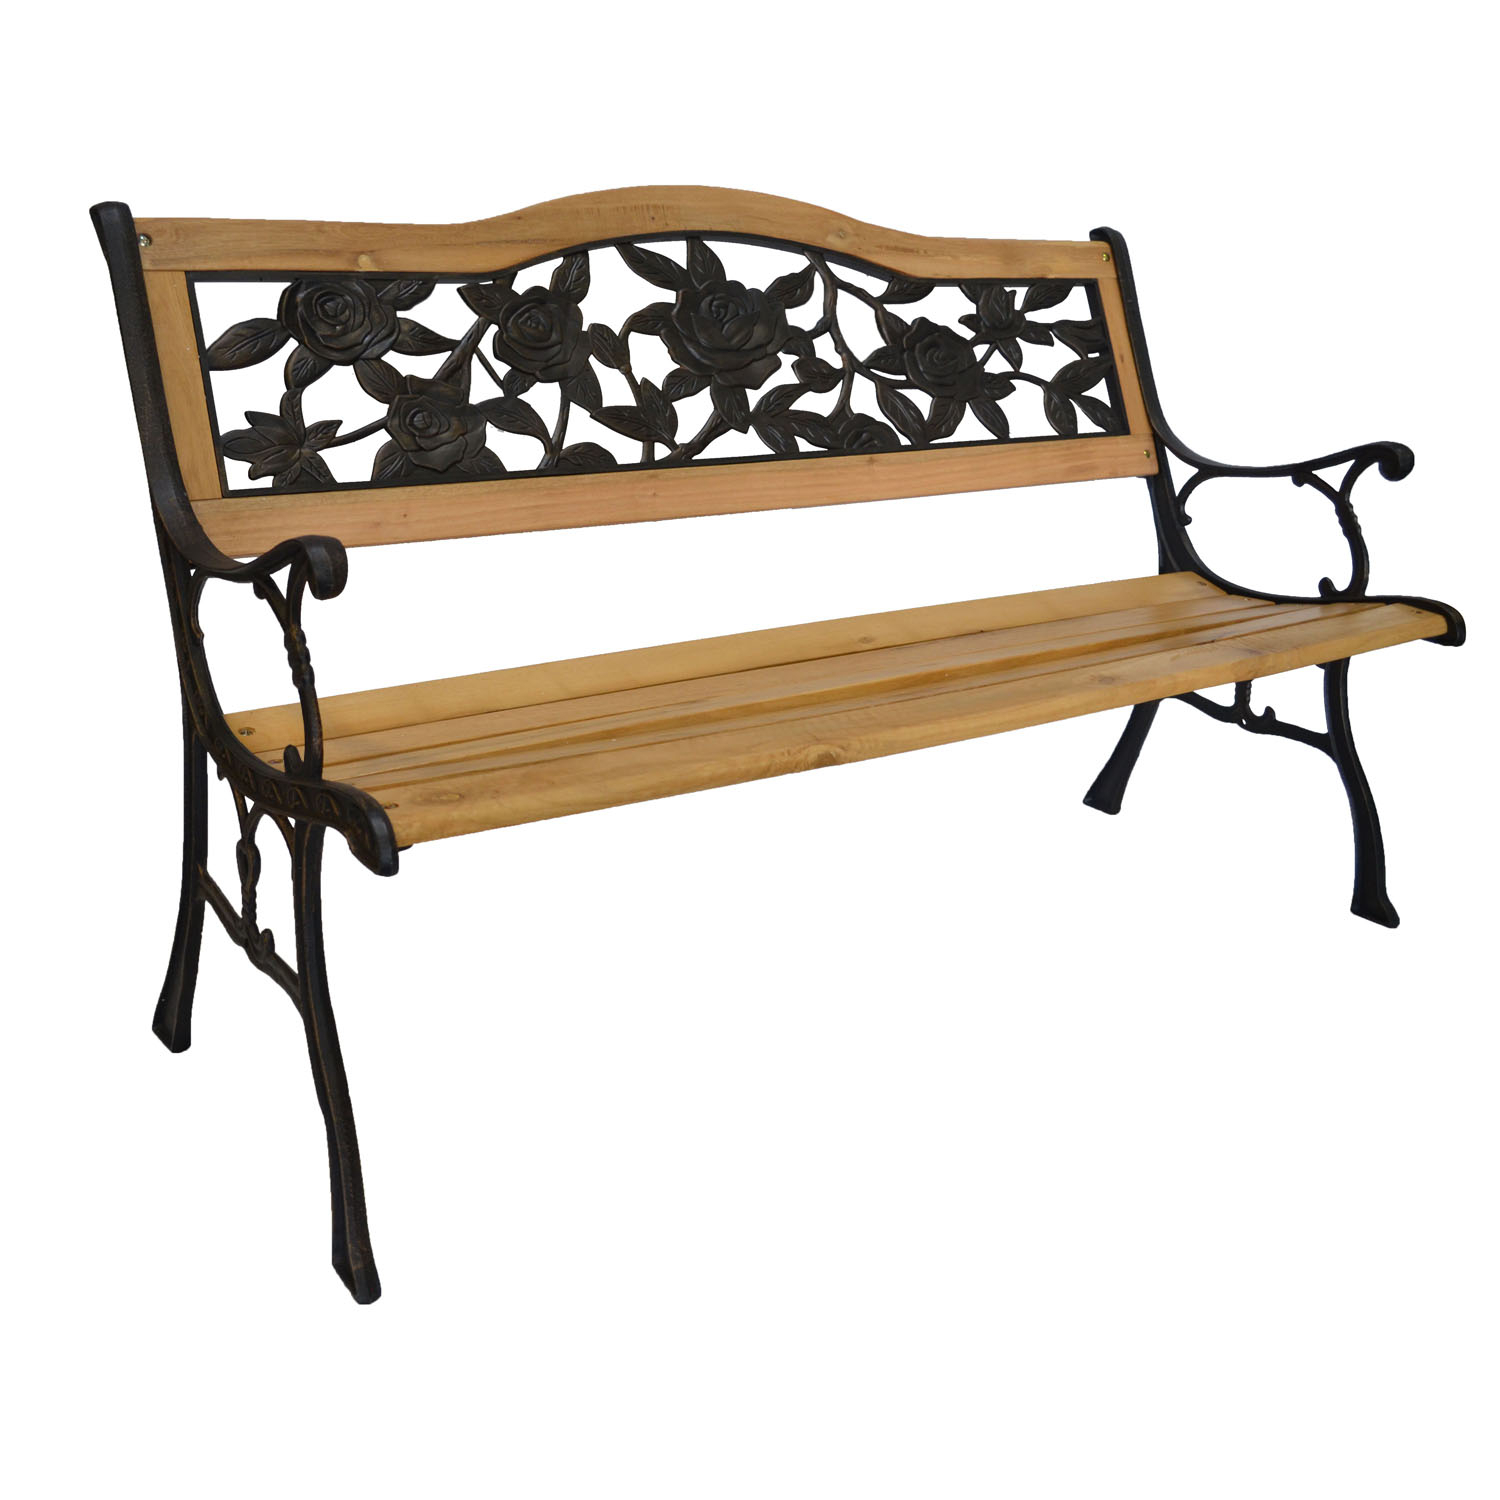 Rose Bloom Cast Iron Park Bench W/ Resin Back Insert For Yard Or Garden V2 – Walmart Within Blooming Iron Garden Benches (View 12 of 25)